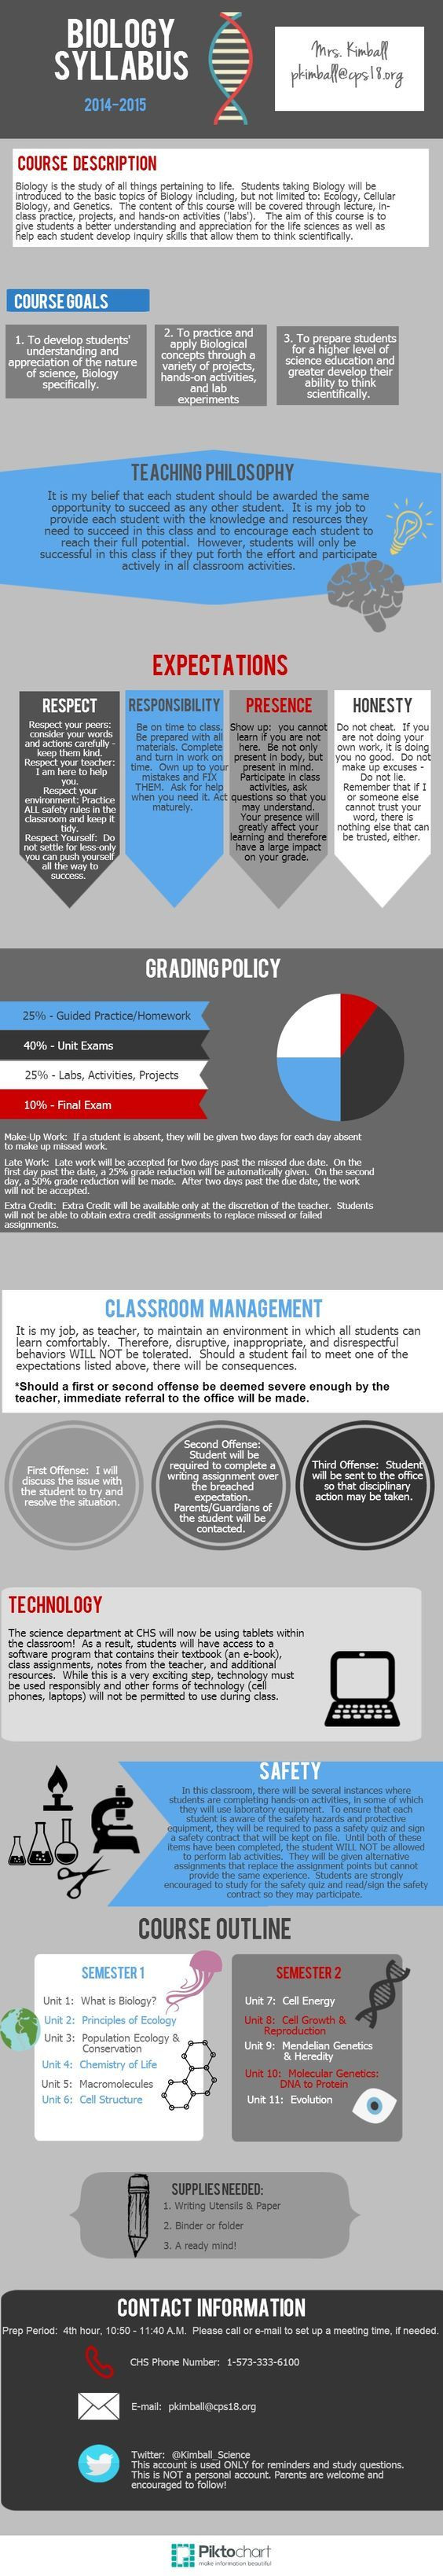 83 best resources images on pinterest school science education syllabus idea for the modern student so cool fandeluxe Gallery